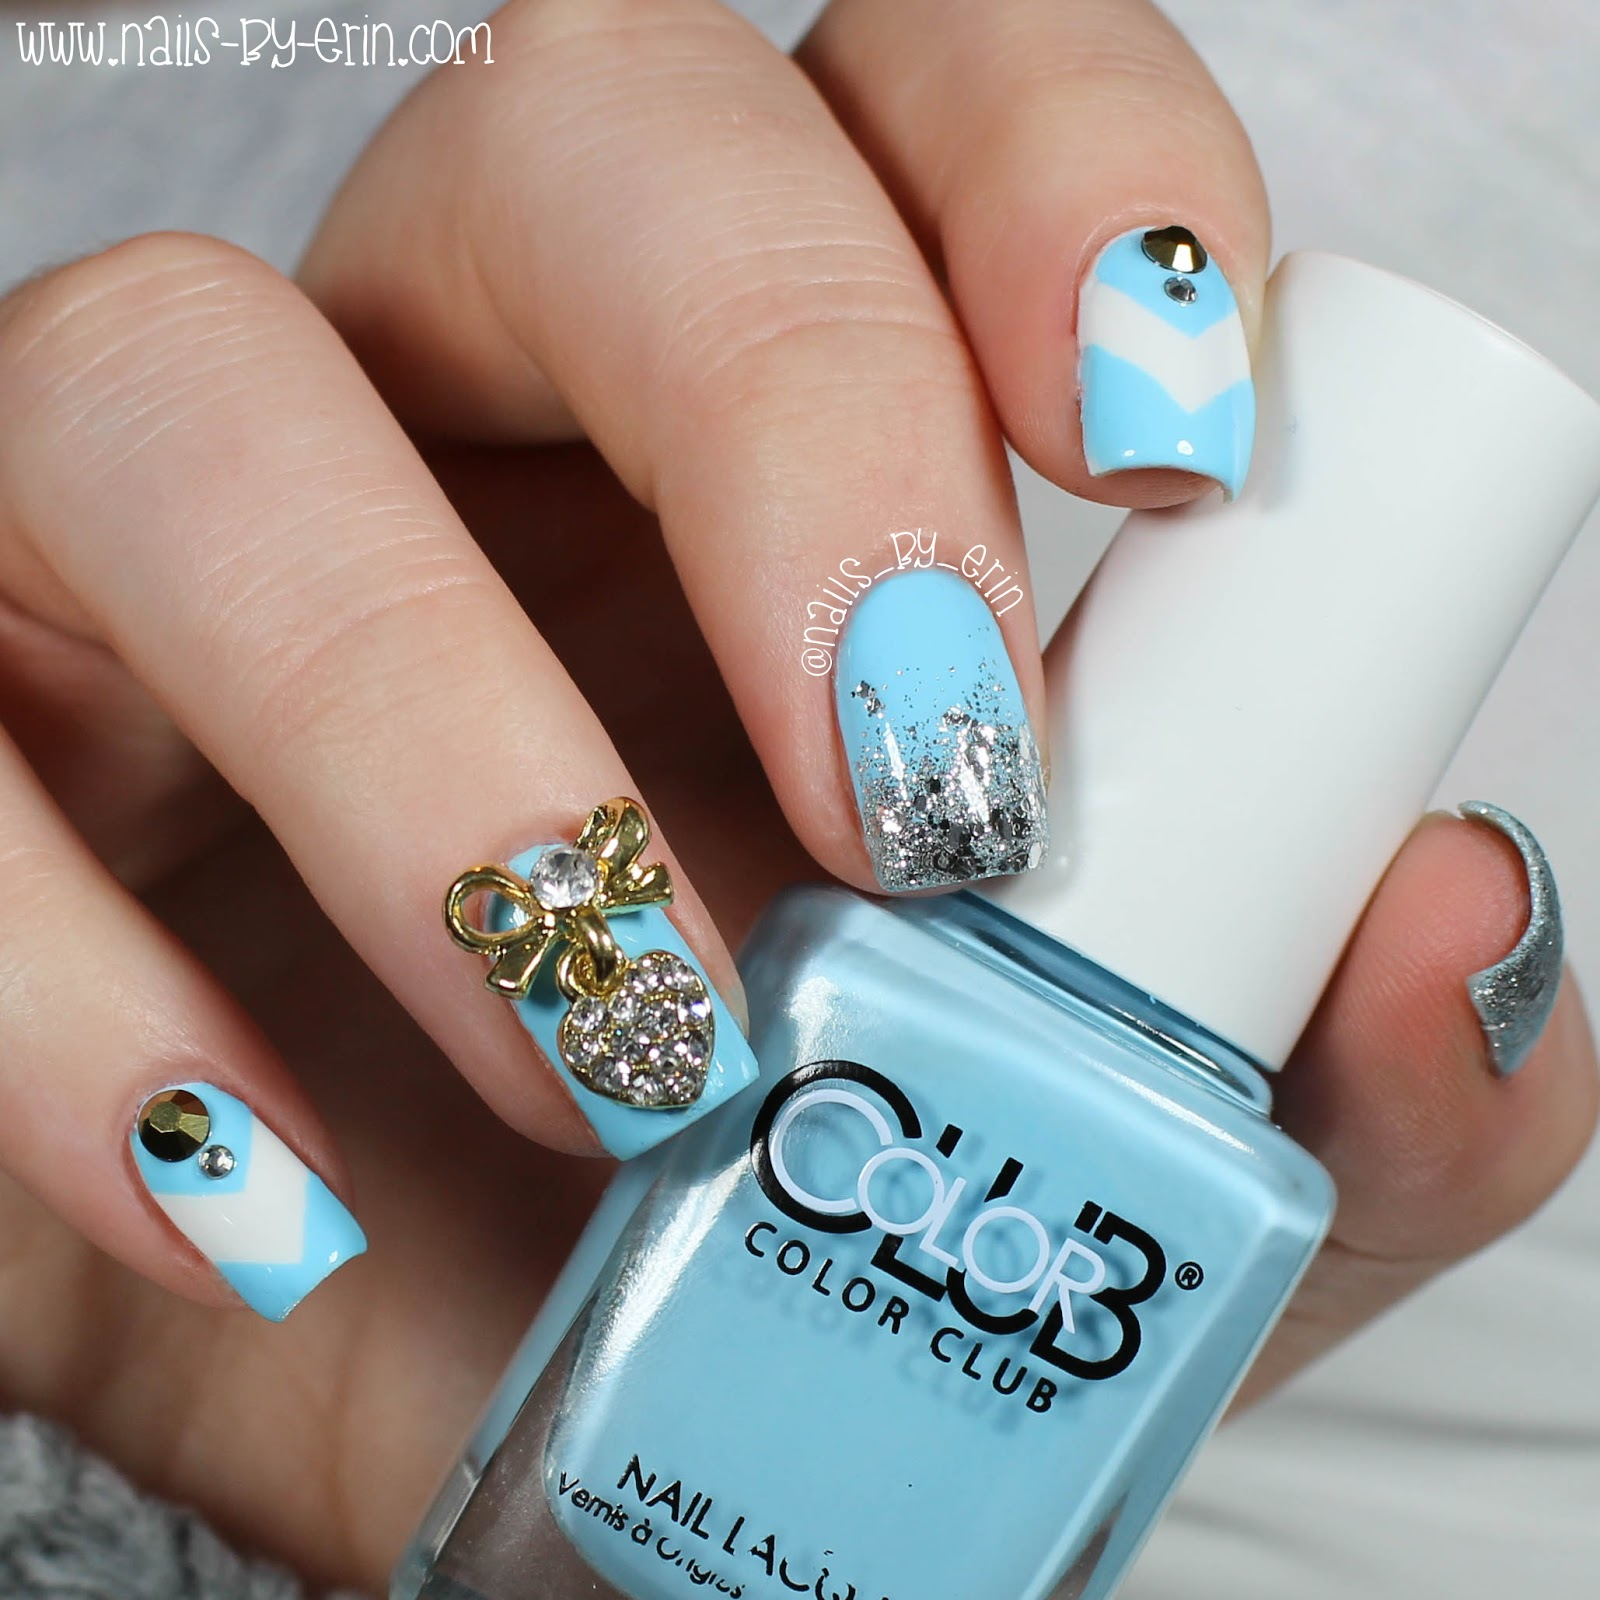 NailsByErin: Blue and Silver Bling Nails